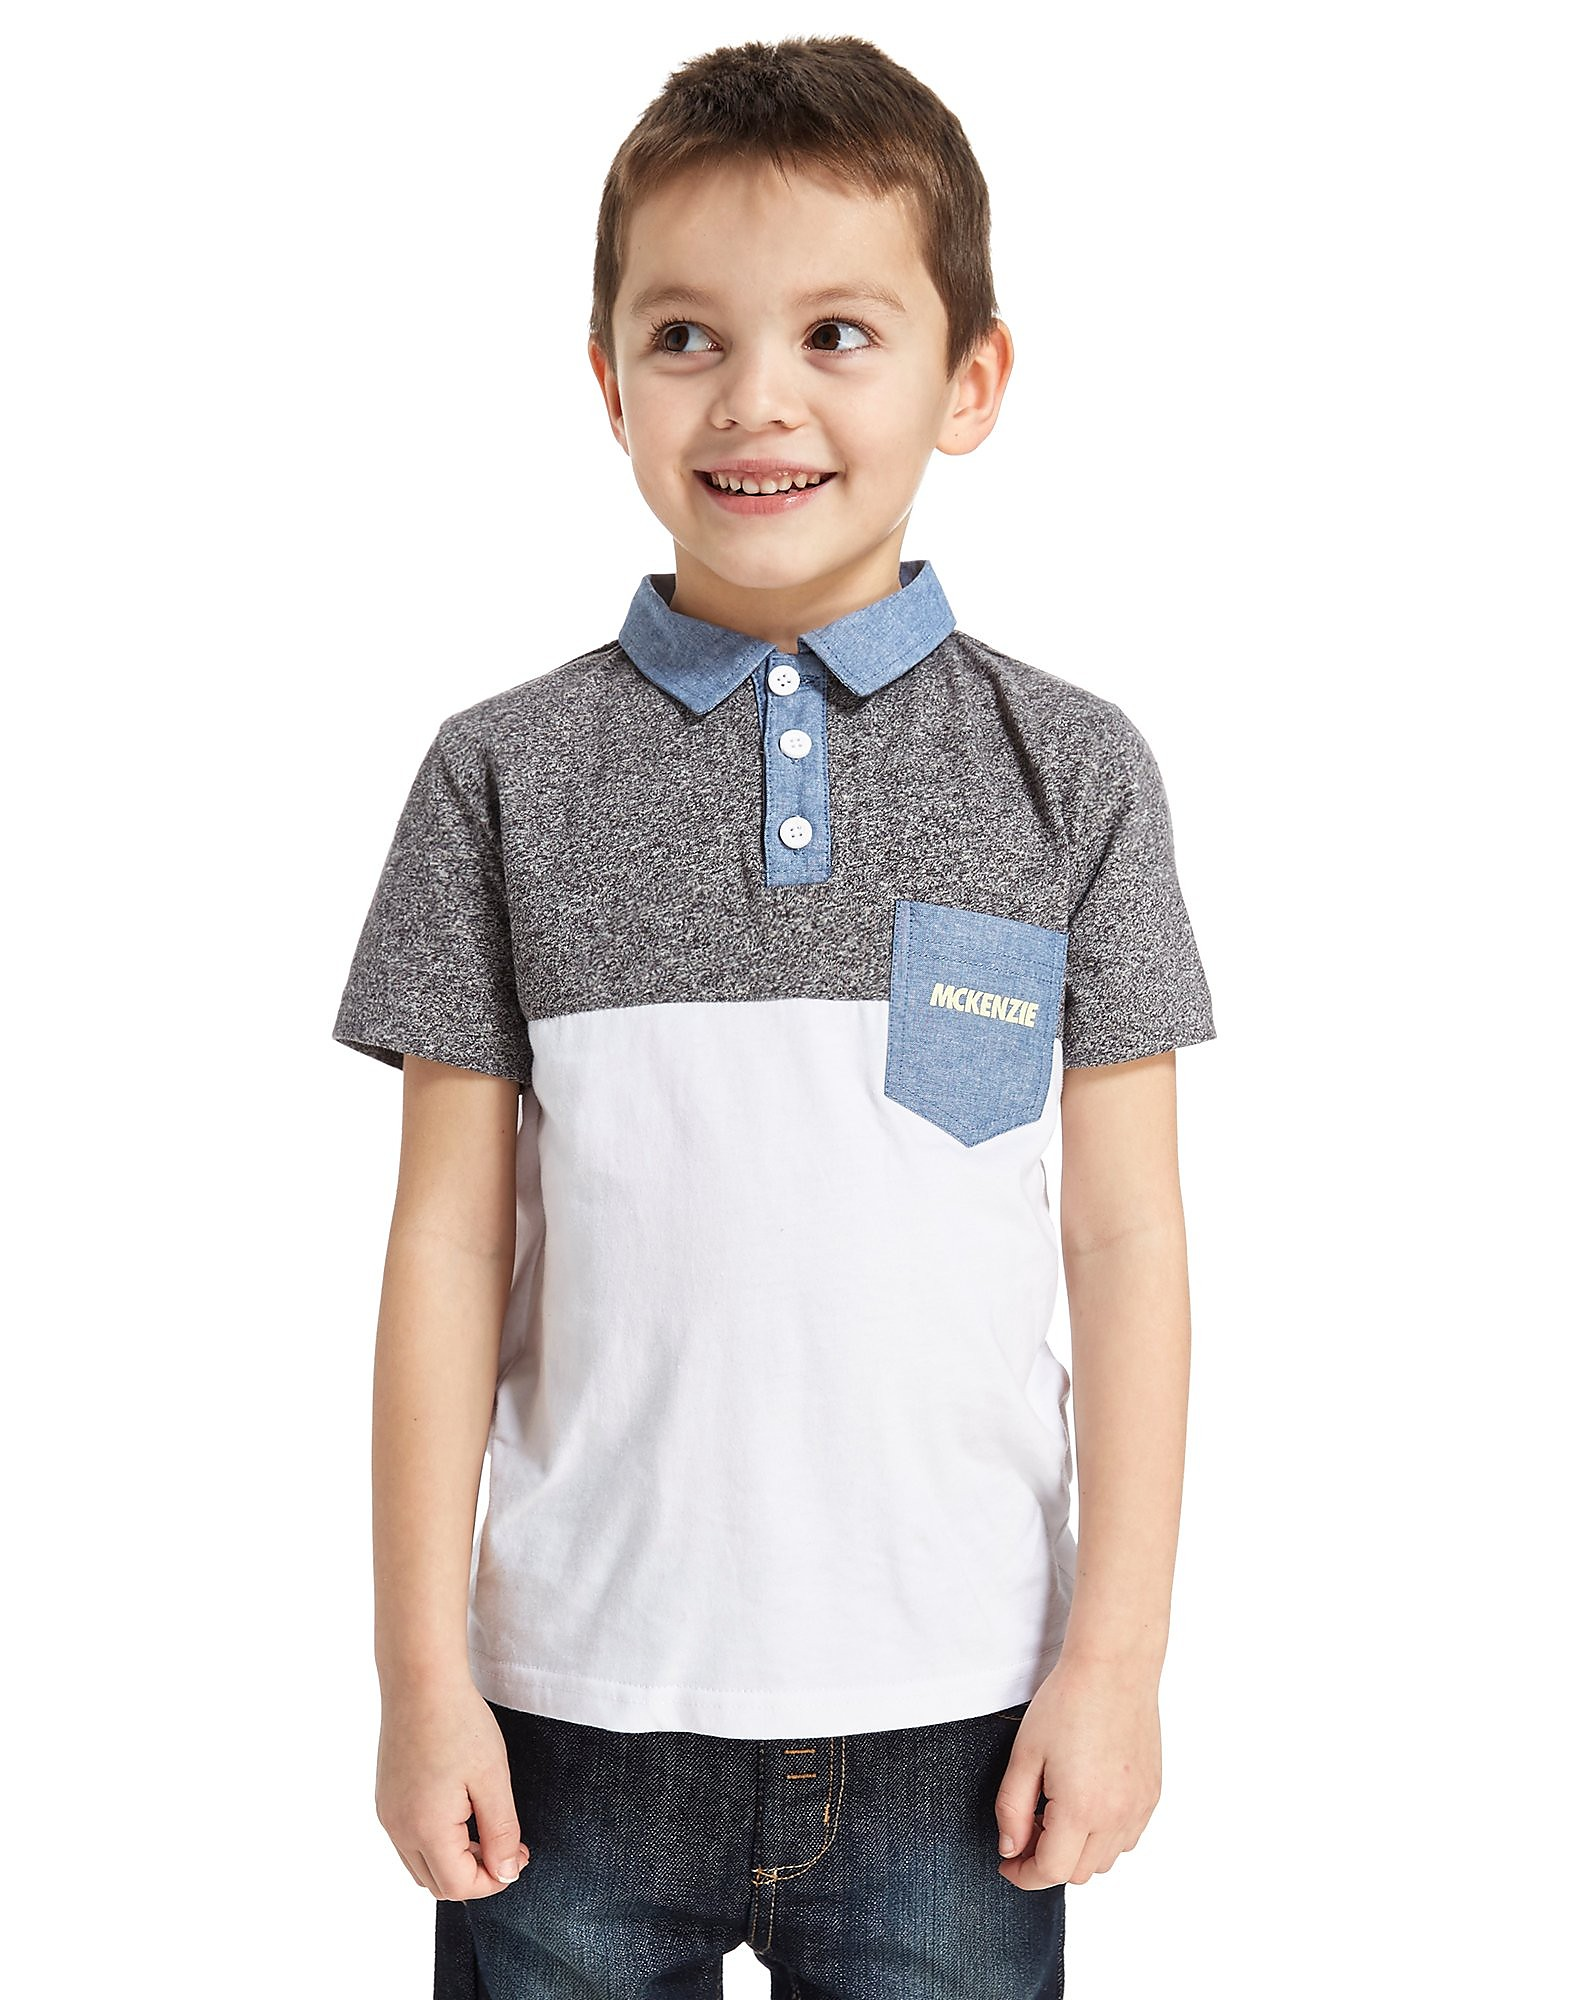 McKenzie Howley Polo Shirt Children